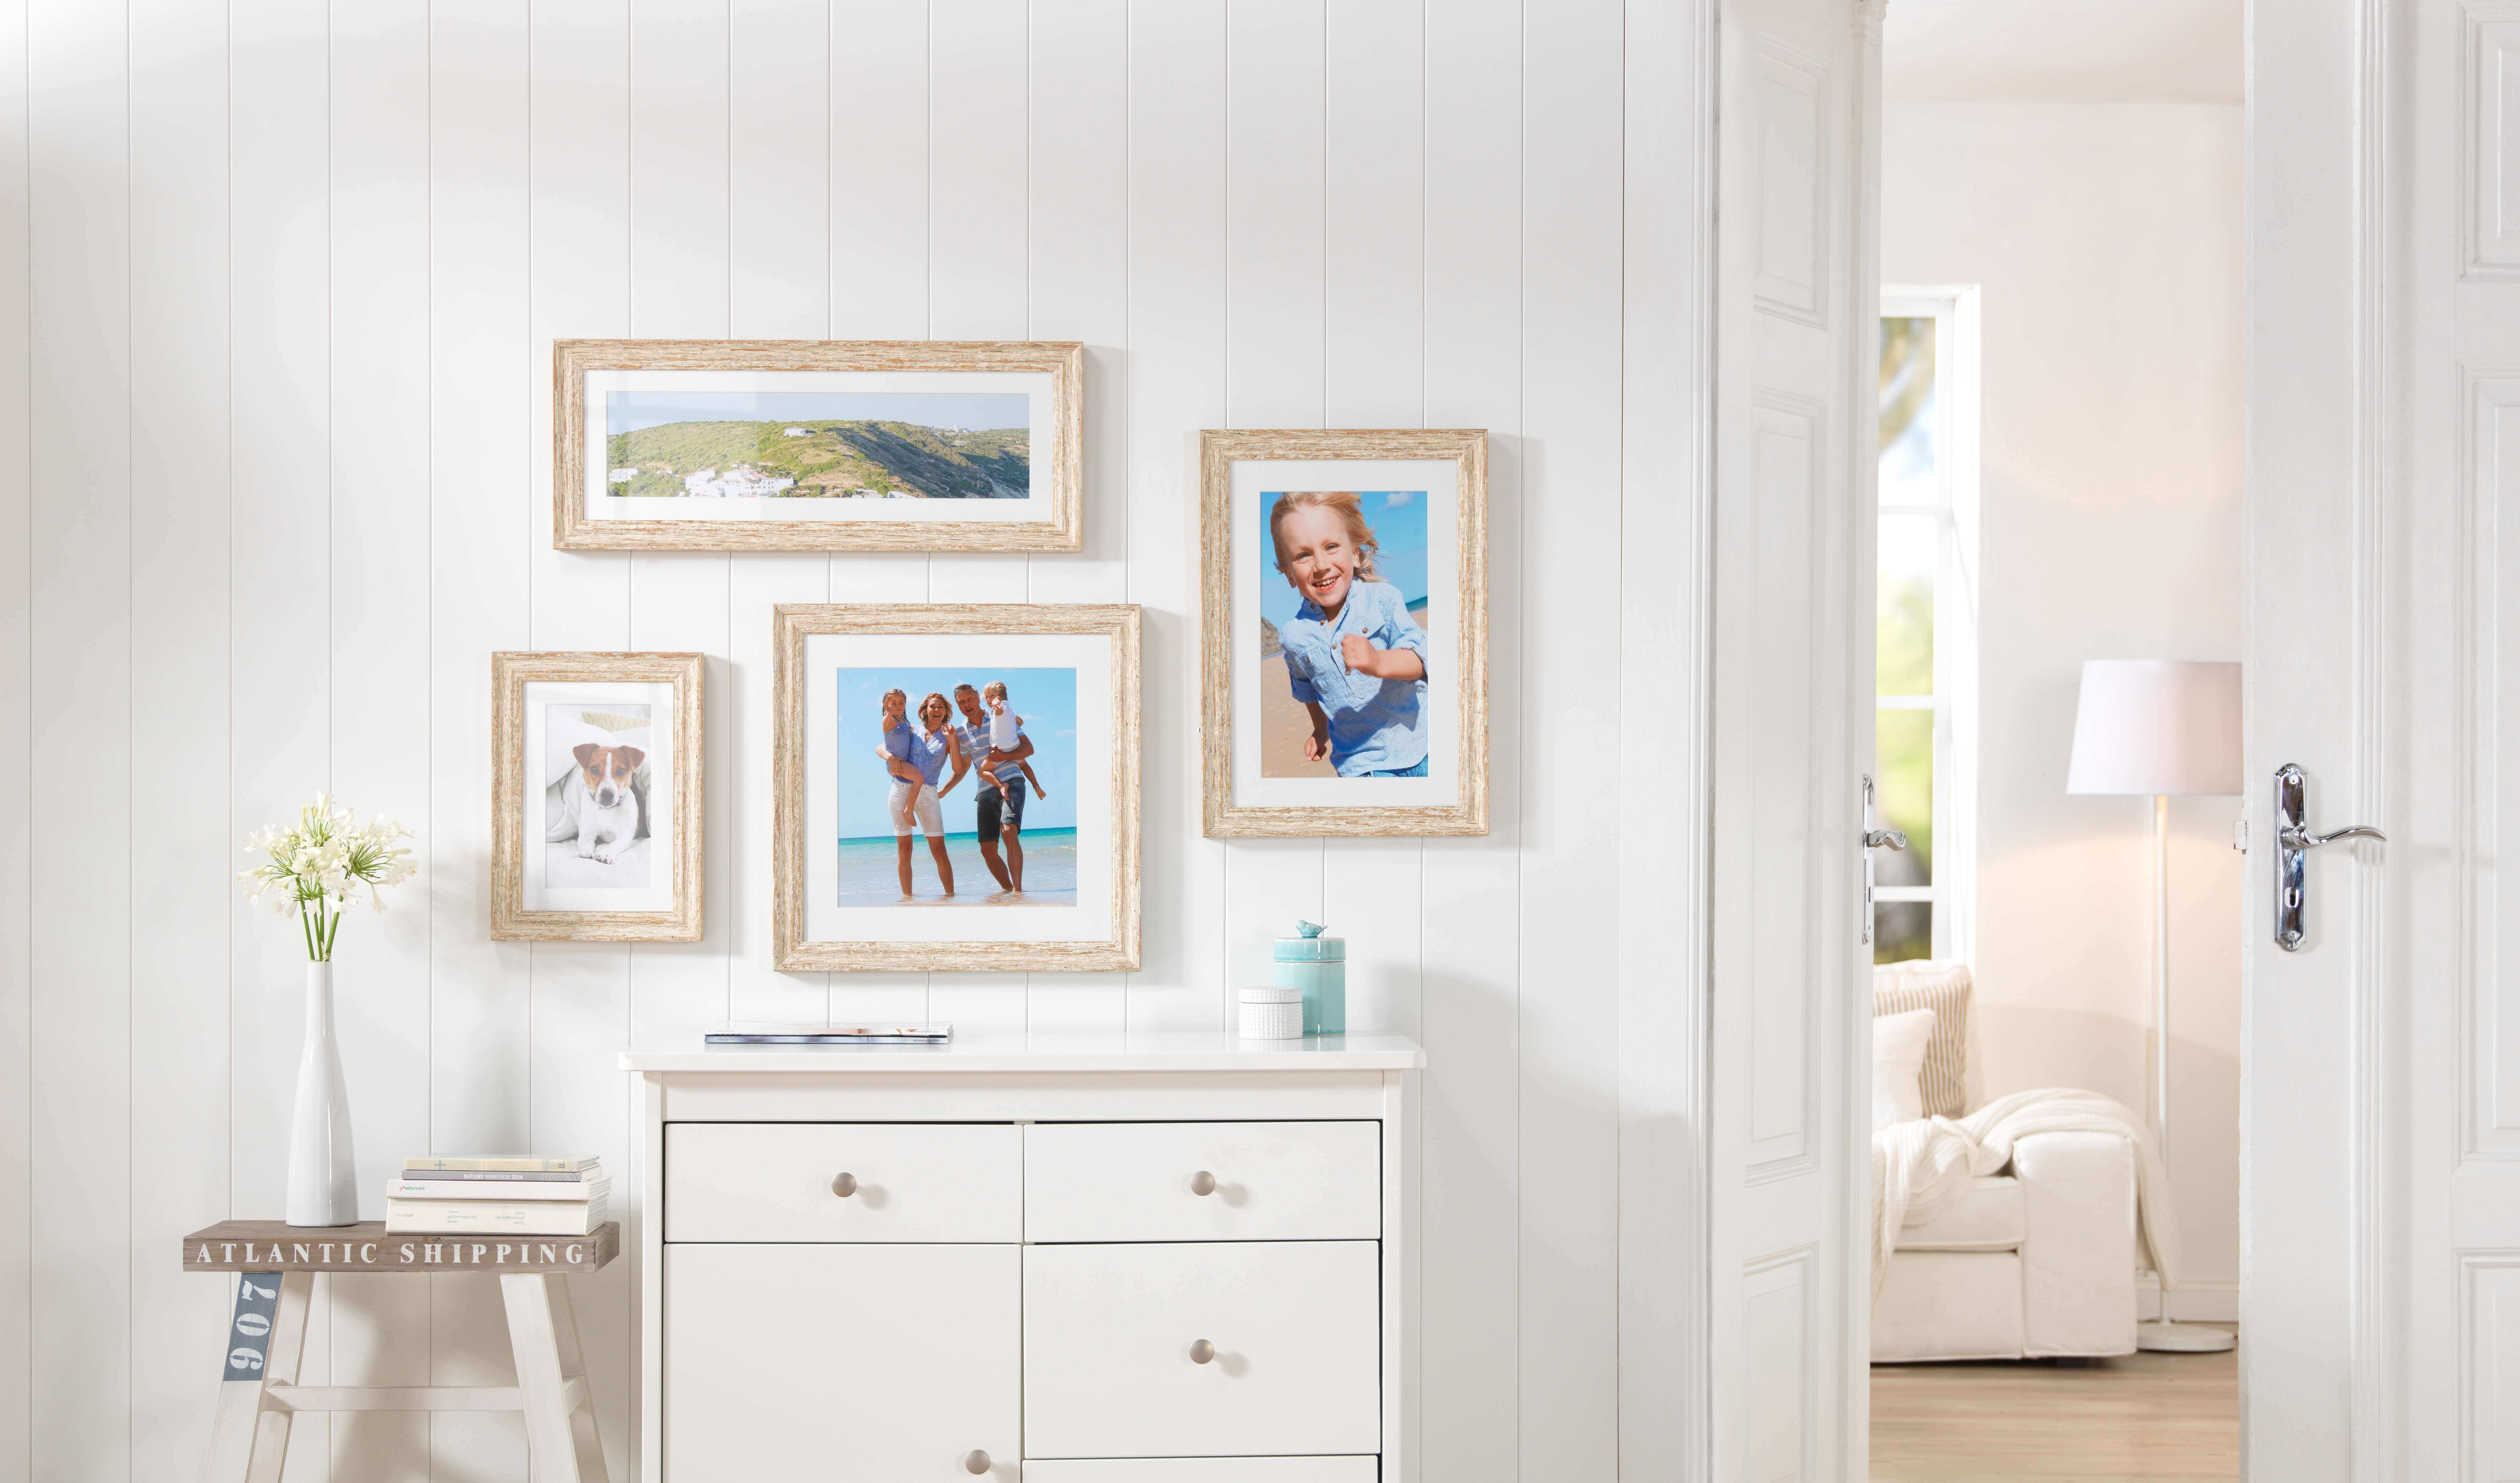 View Our Wide Range of Framed Poster Prints